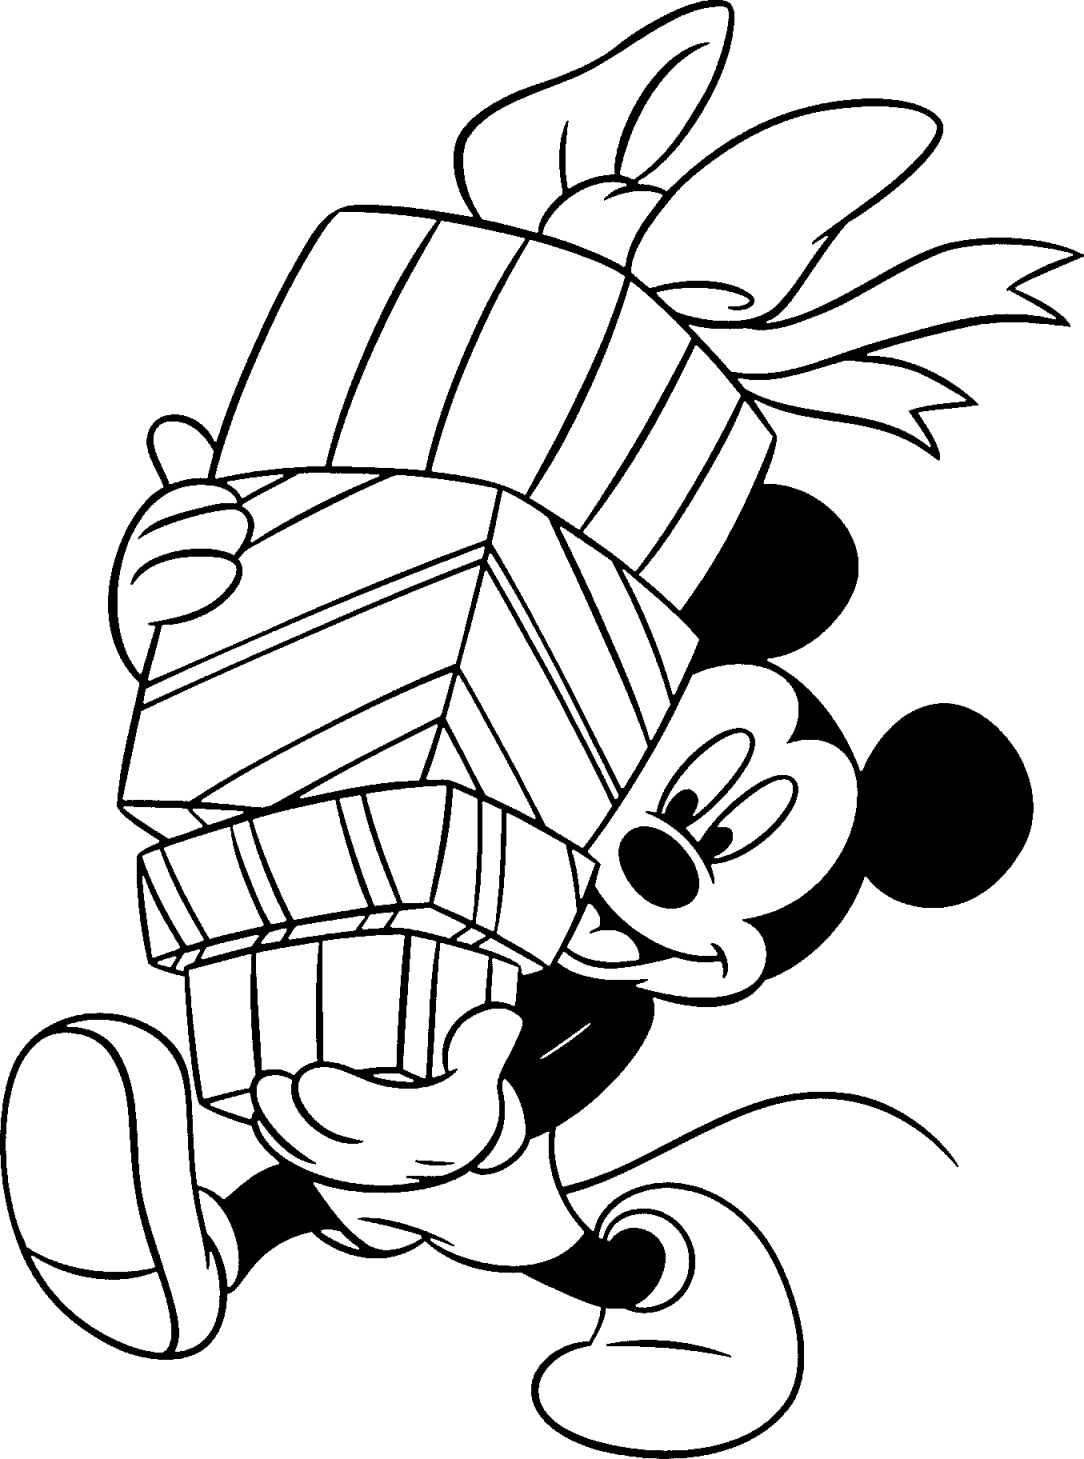 childrens disney coloring pages - photo#33